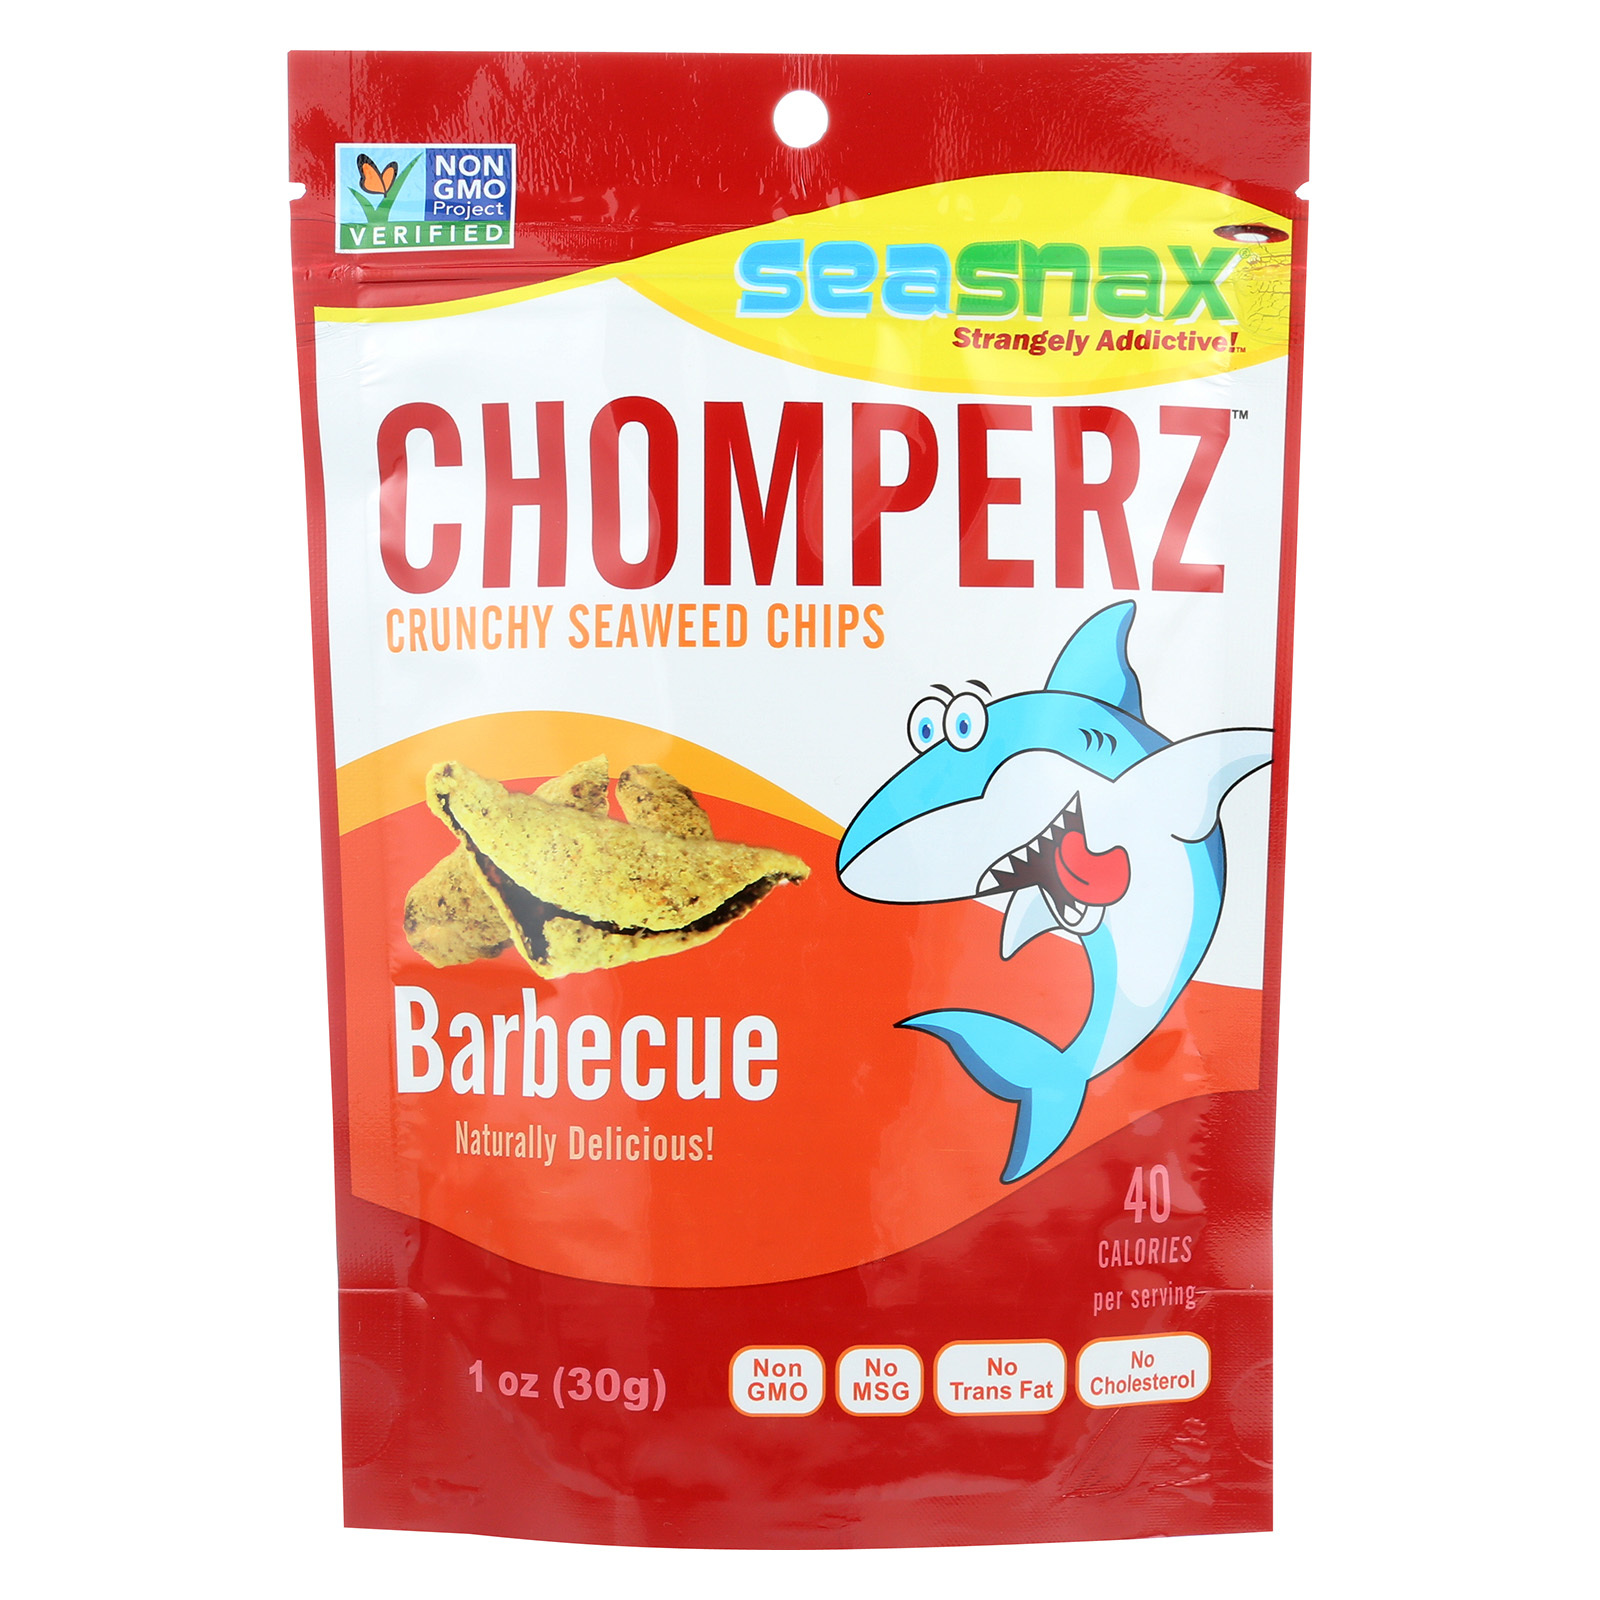 Seasnax Chomperz Crunchy Seaweed Chips - Barbecue - Case of 8 - 1 oz.